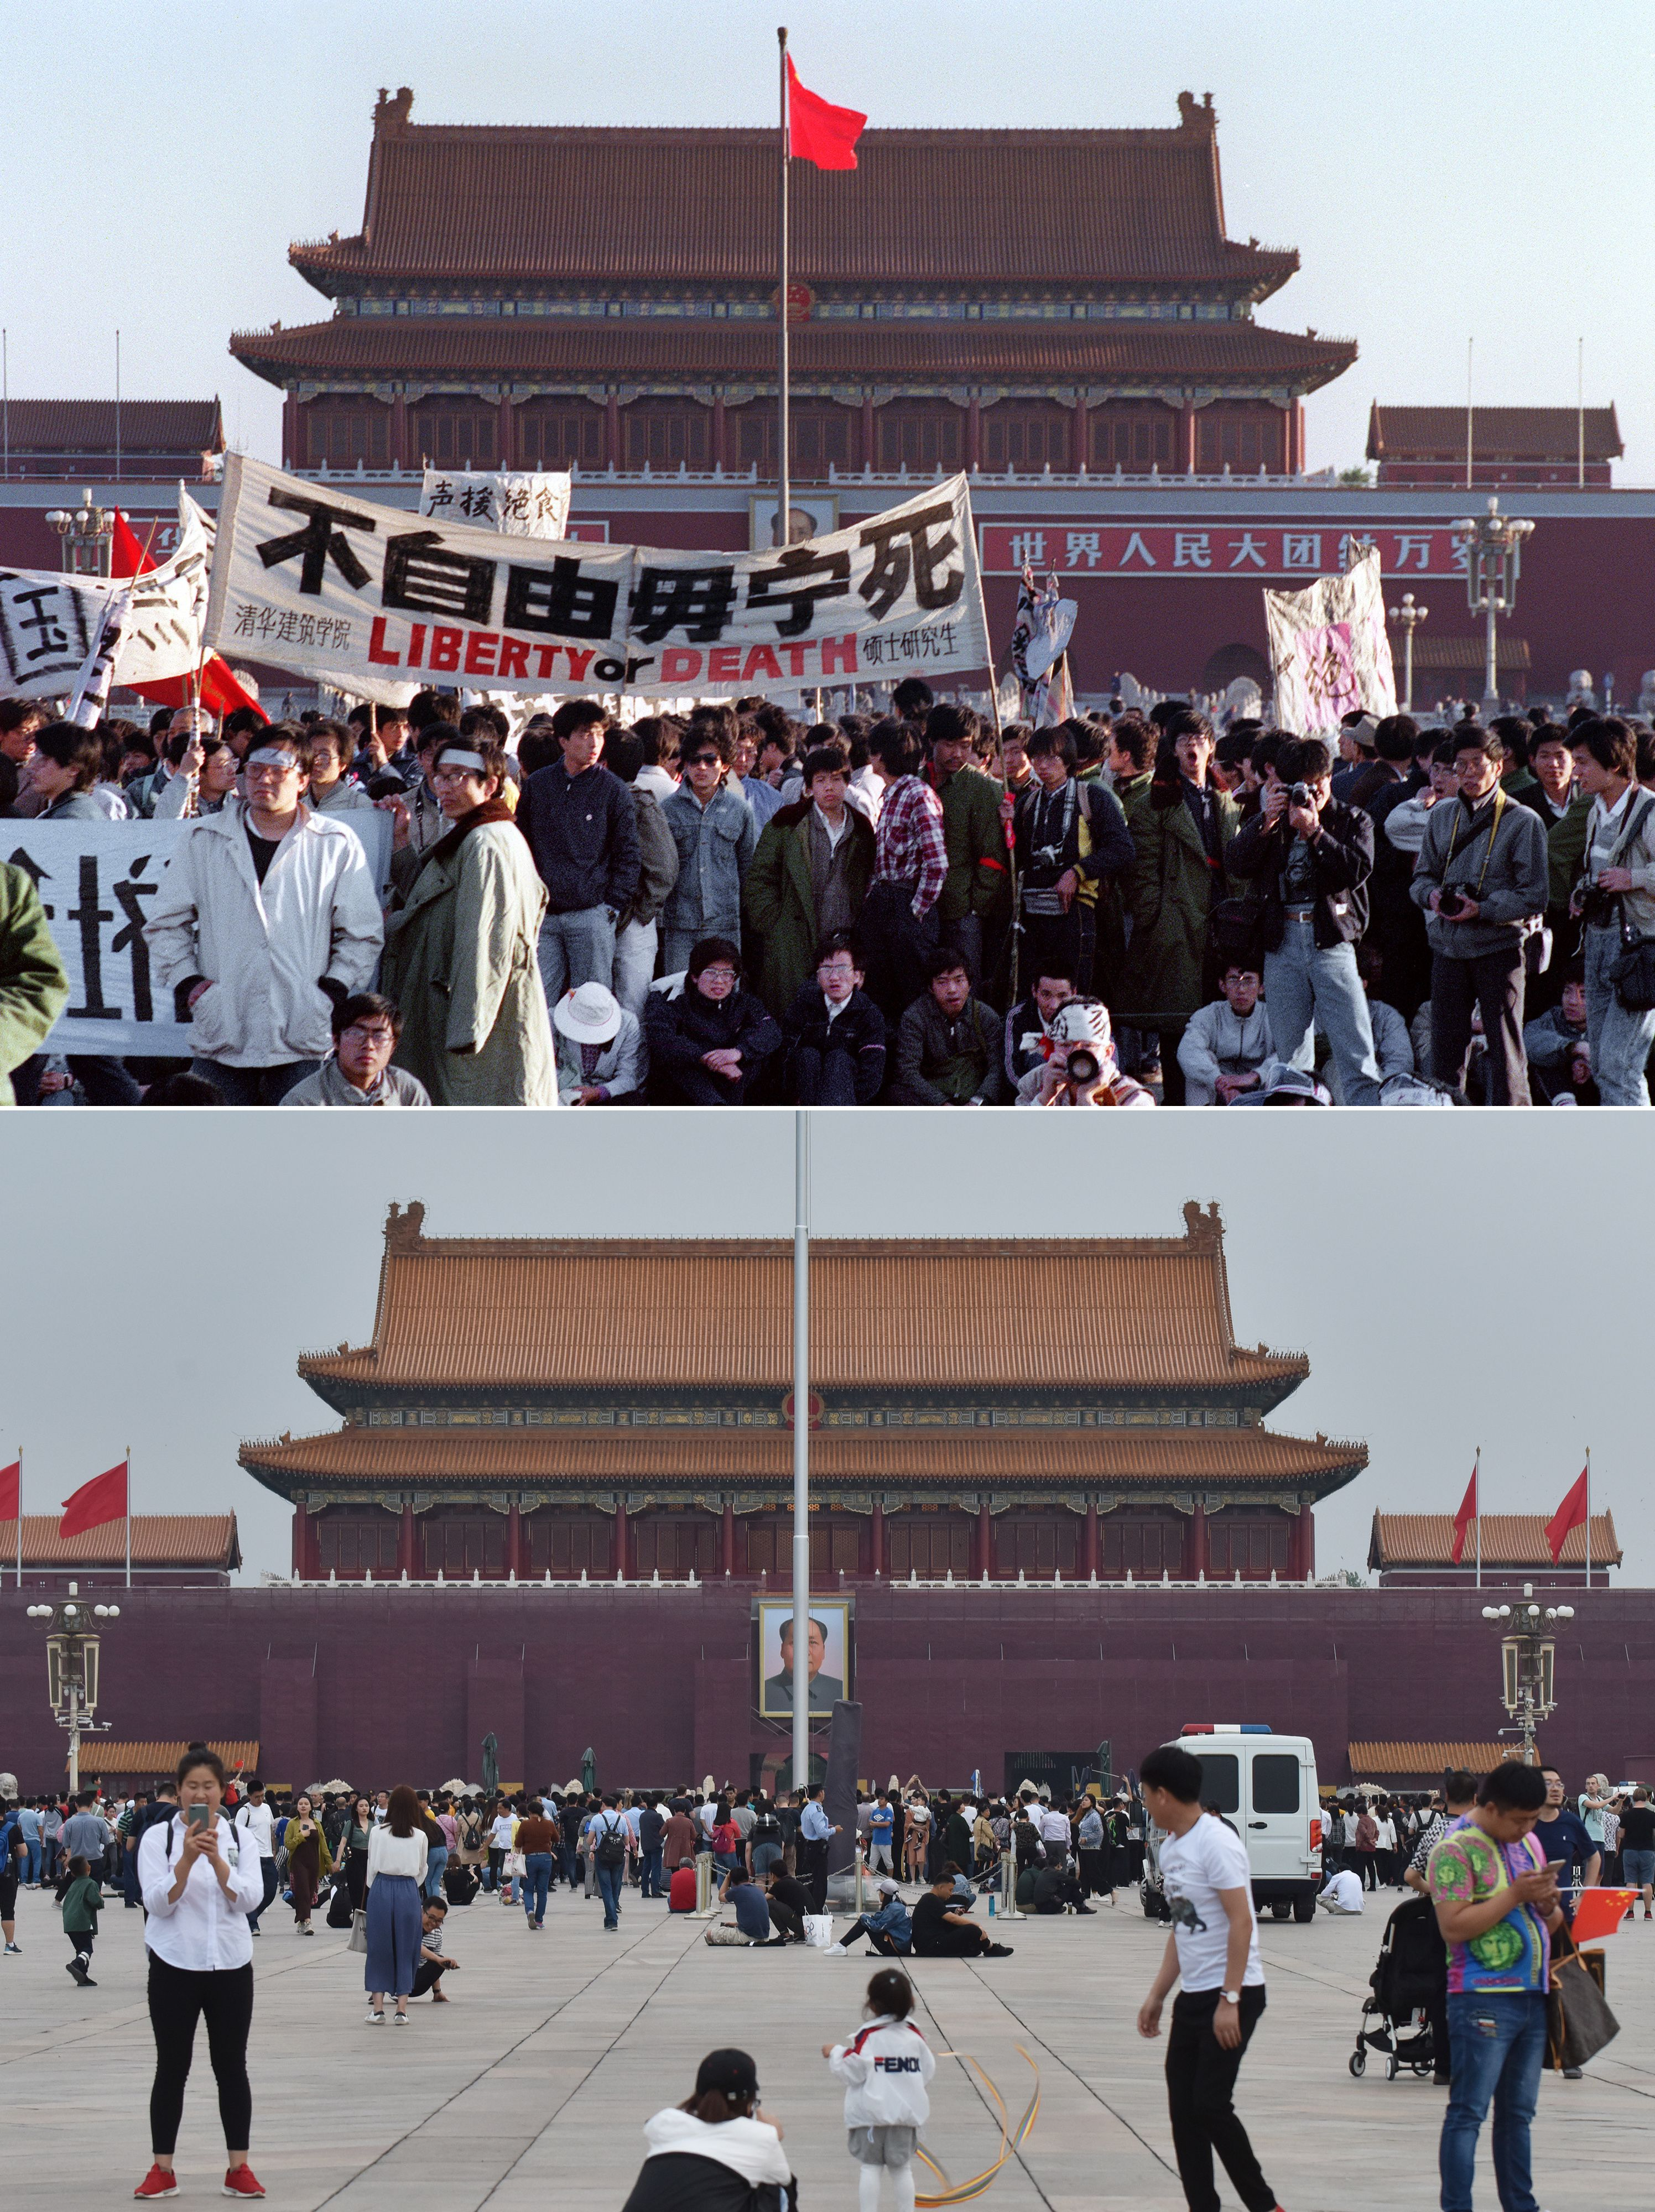 Thirty years on: Students in Tiananmen Square on 14 May 1989 and in May 2019.